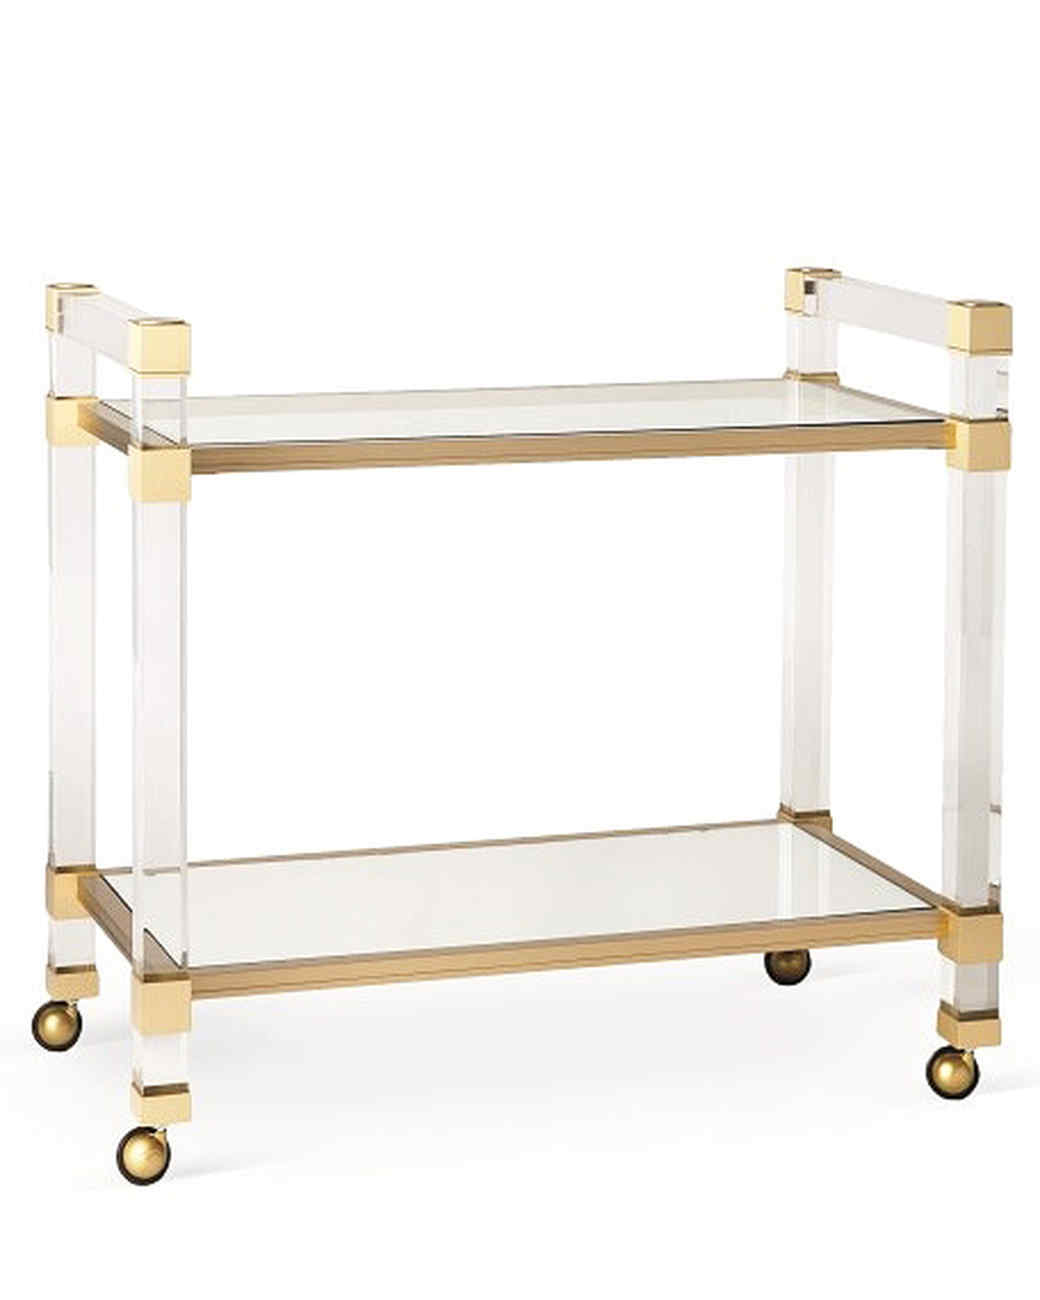 10-harrison-bar-cart.jpg